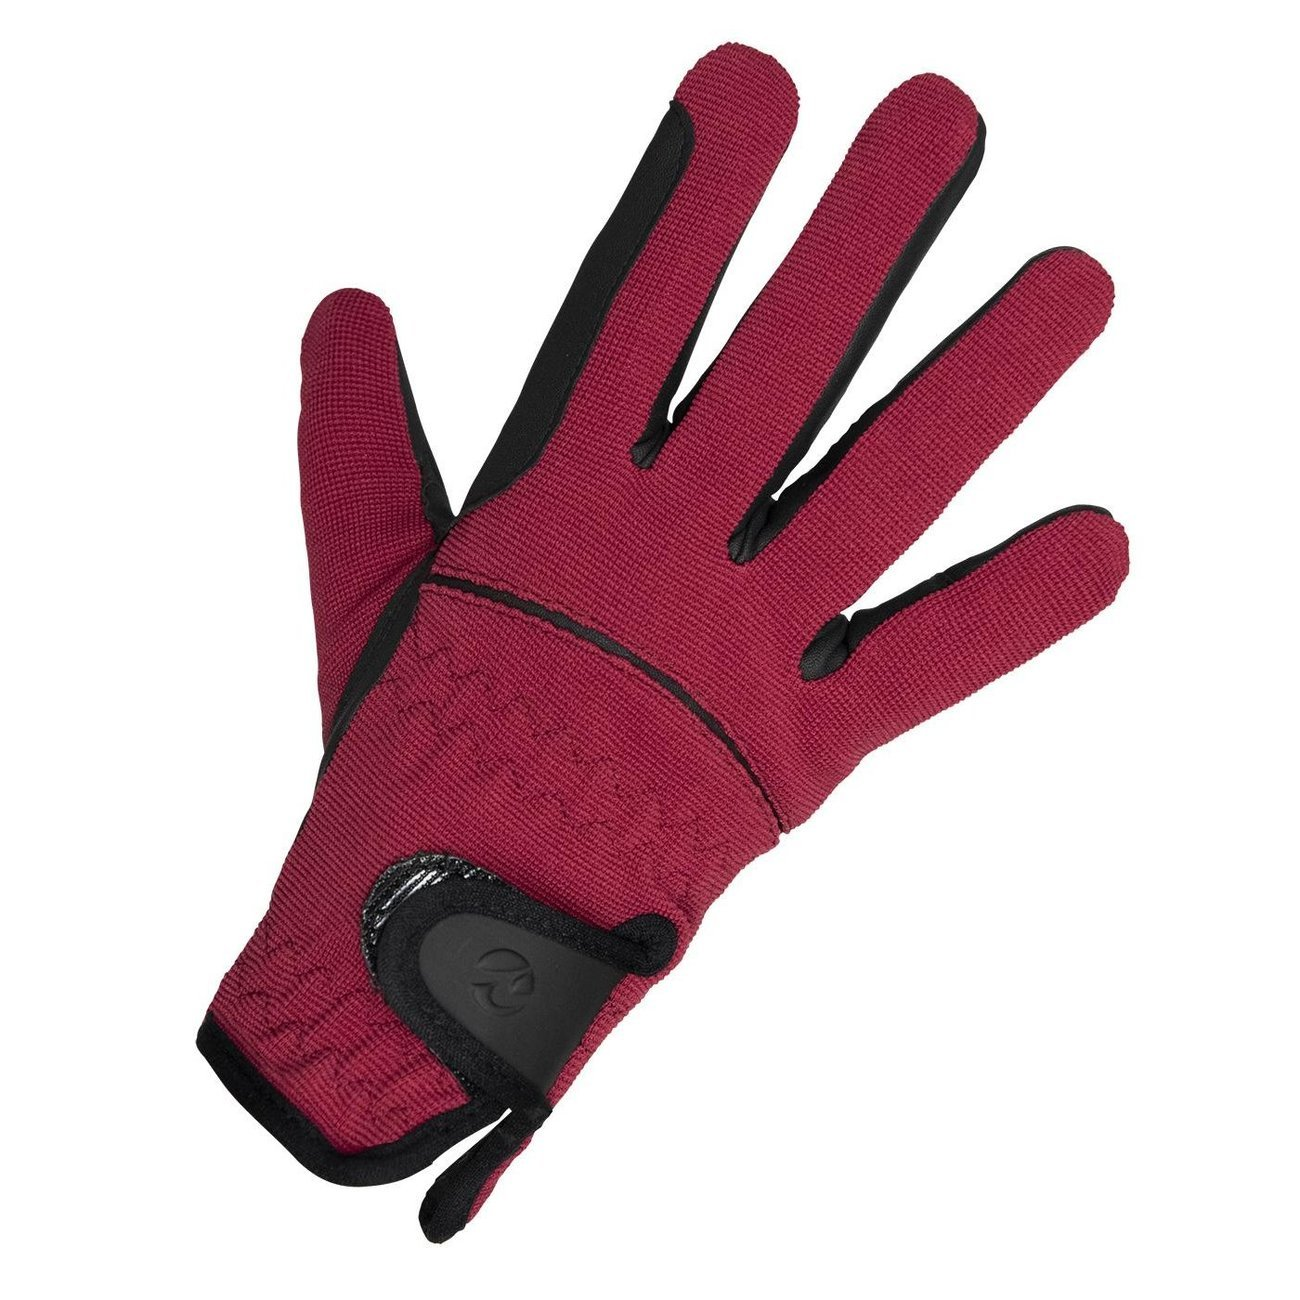 BUSSE Winter Reit Handschuhe Kaya, Kindergröße CL, wine/black